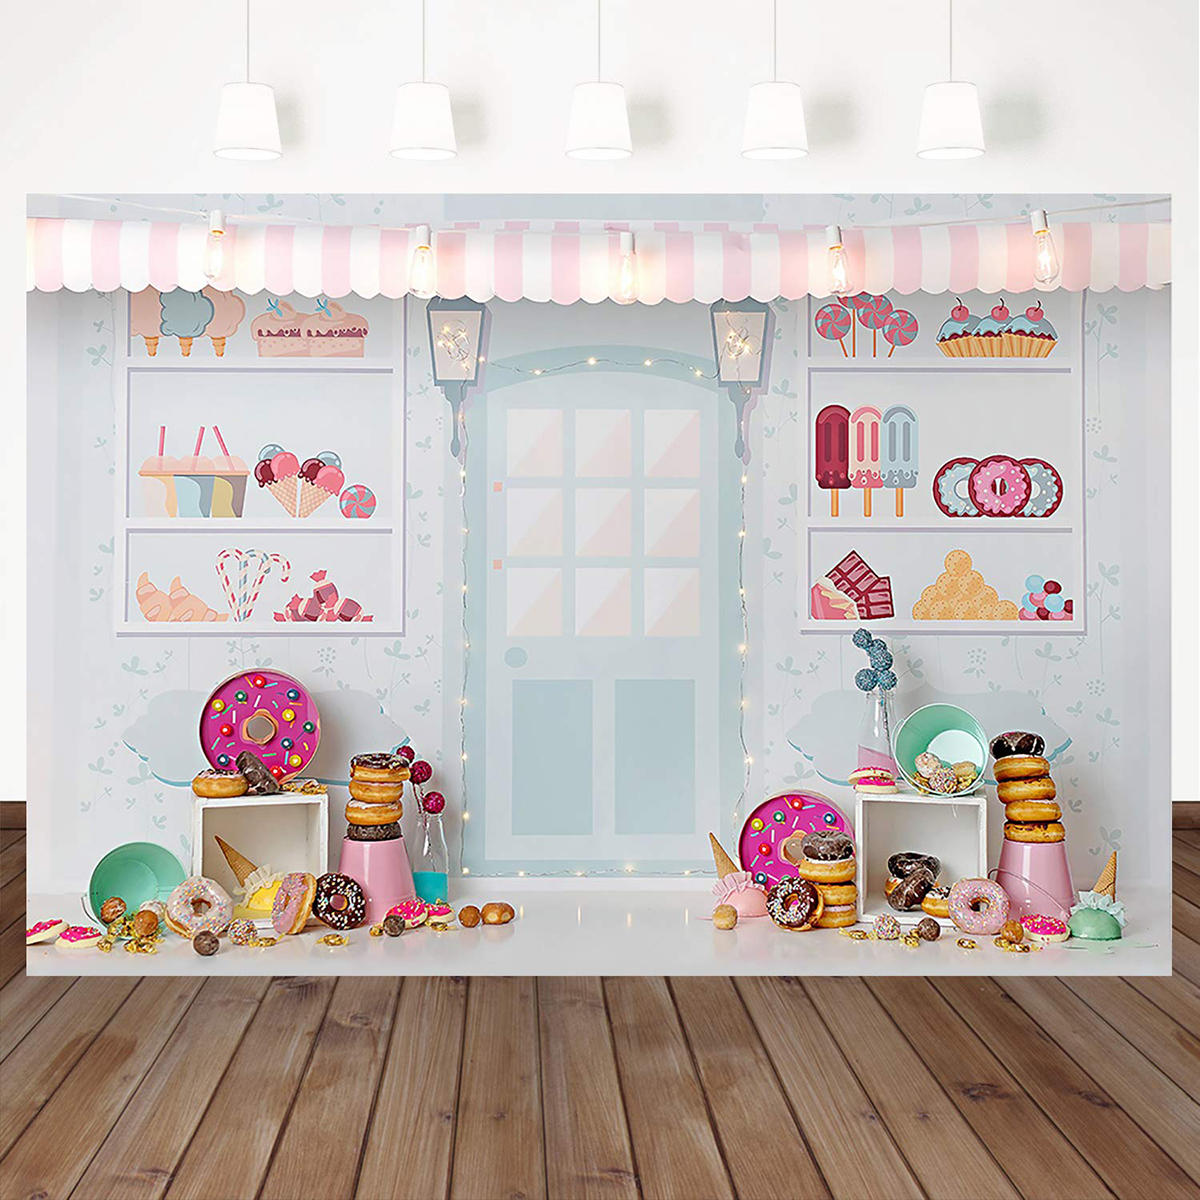 Vinyl Cartoon Dessert Shop Theme Birthday Photography Backdrop Birthday Party Decoration